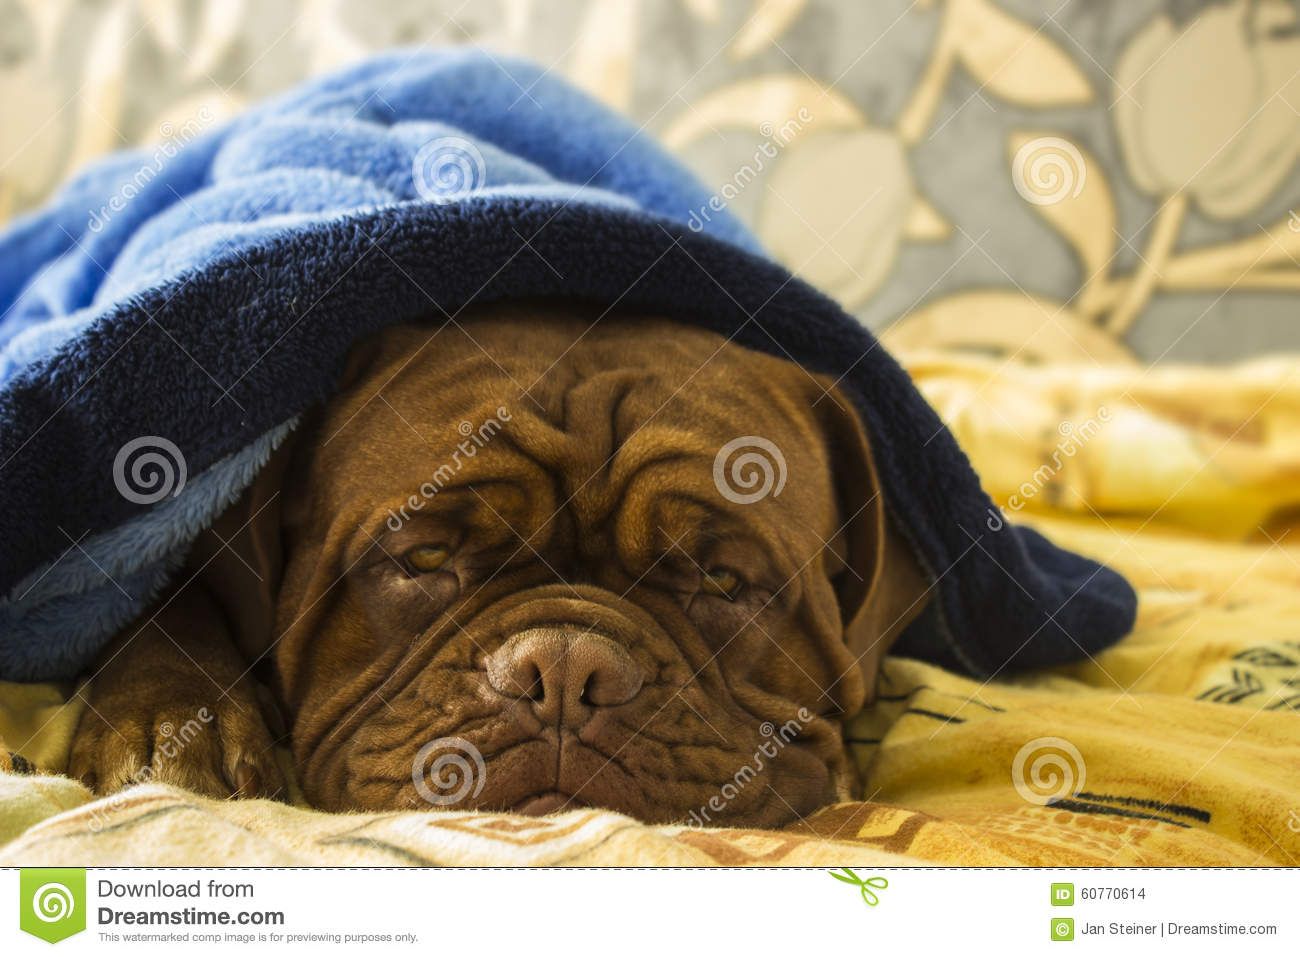 Dogue de Bordeaux en una cama